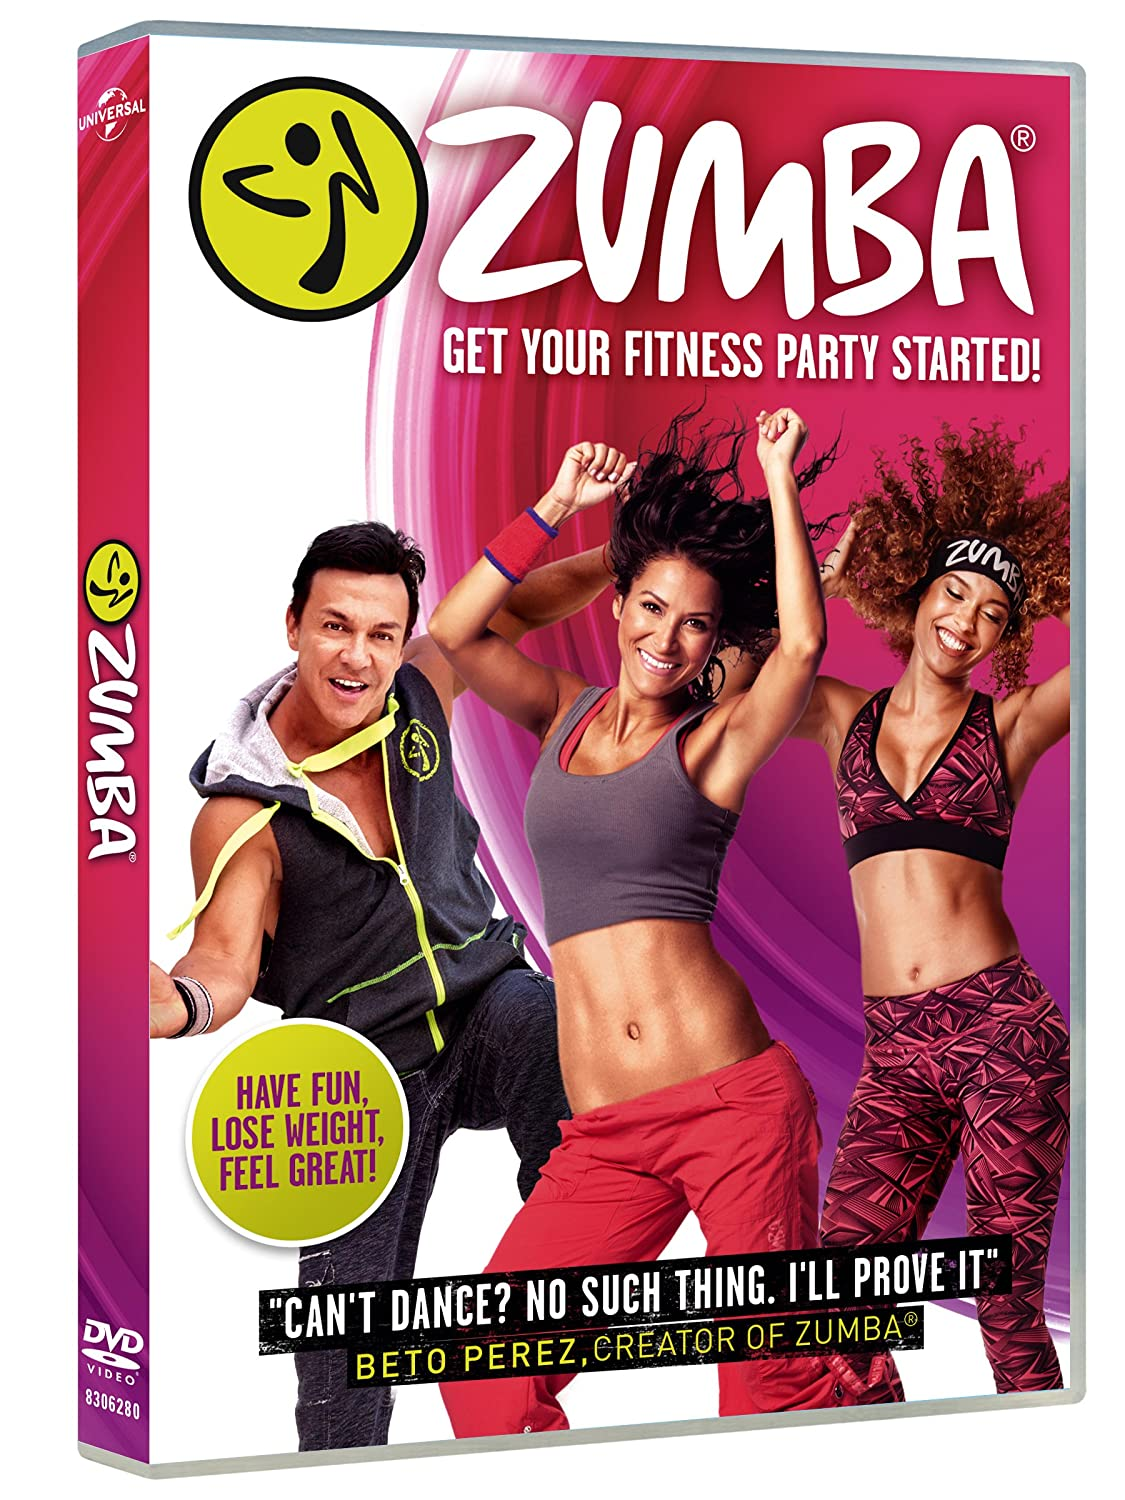 zumba dvd 2015 dance workout fitness burn fat training exercise new sealed ebay. Black Bedroom Furniture Sets. Home Design Ideas